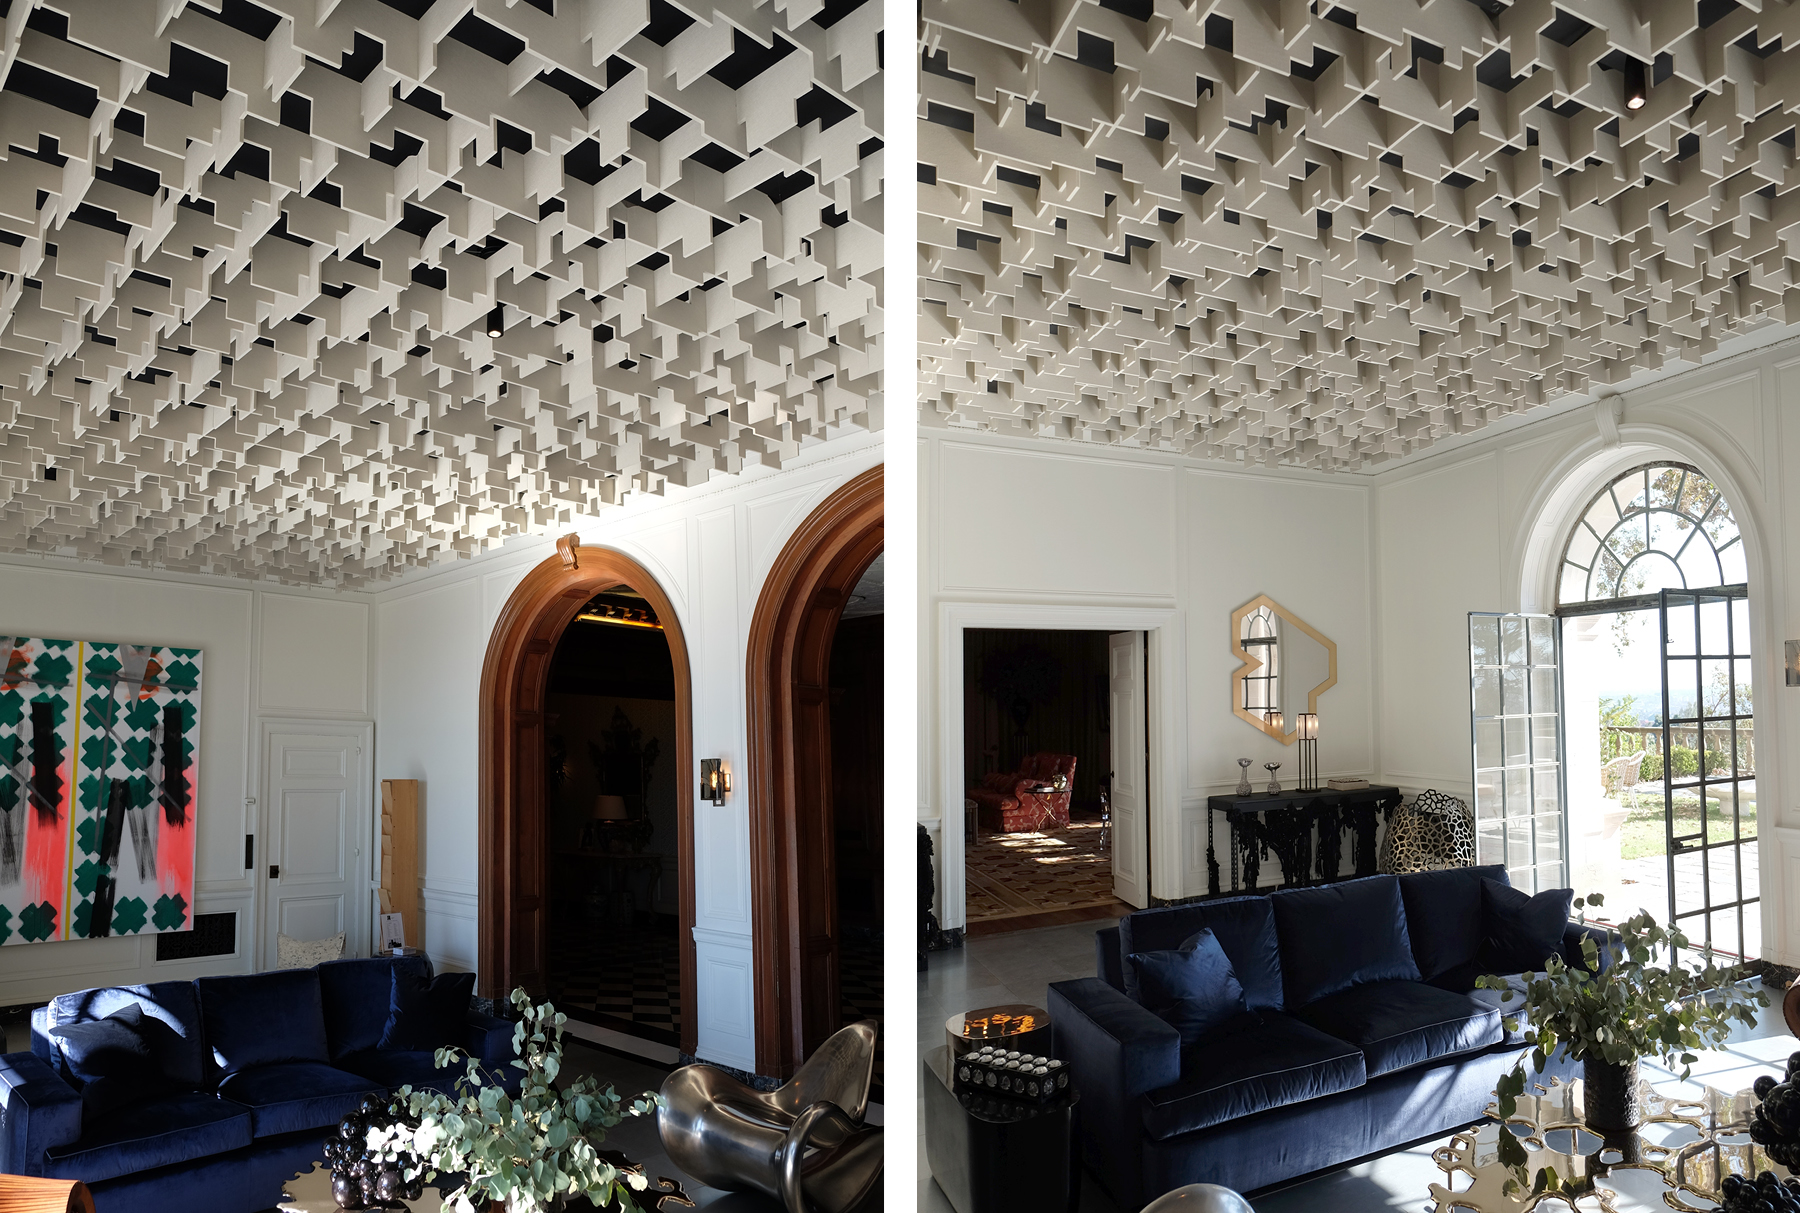 SoftGrid® Skyline acoustical system installed in Greystone Manor